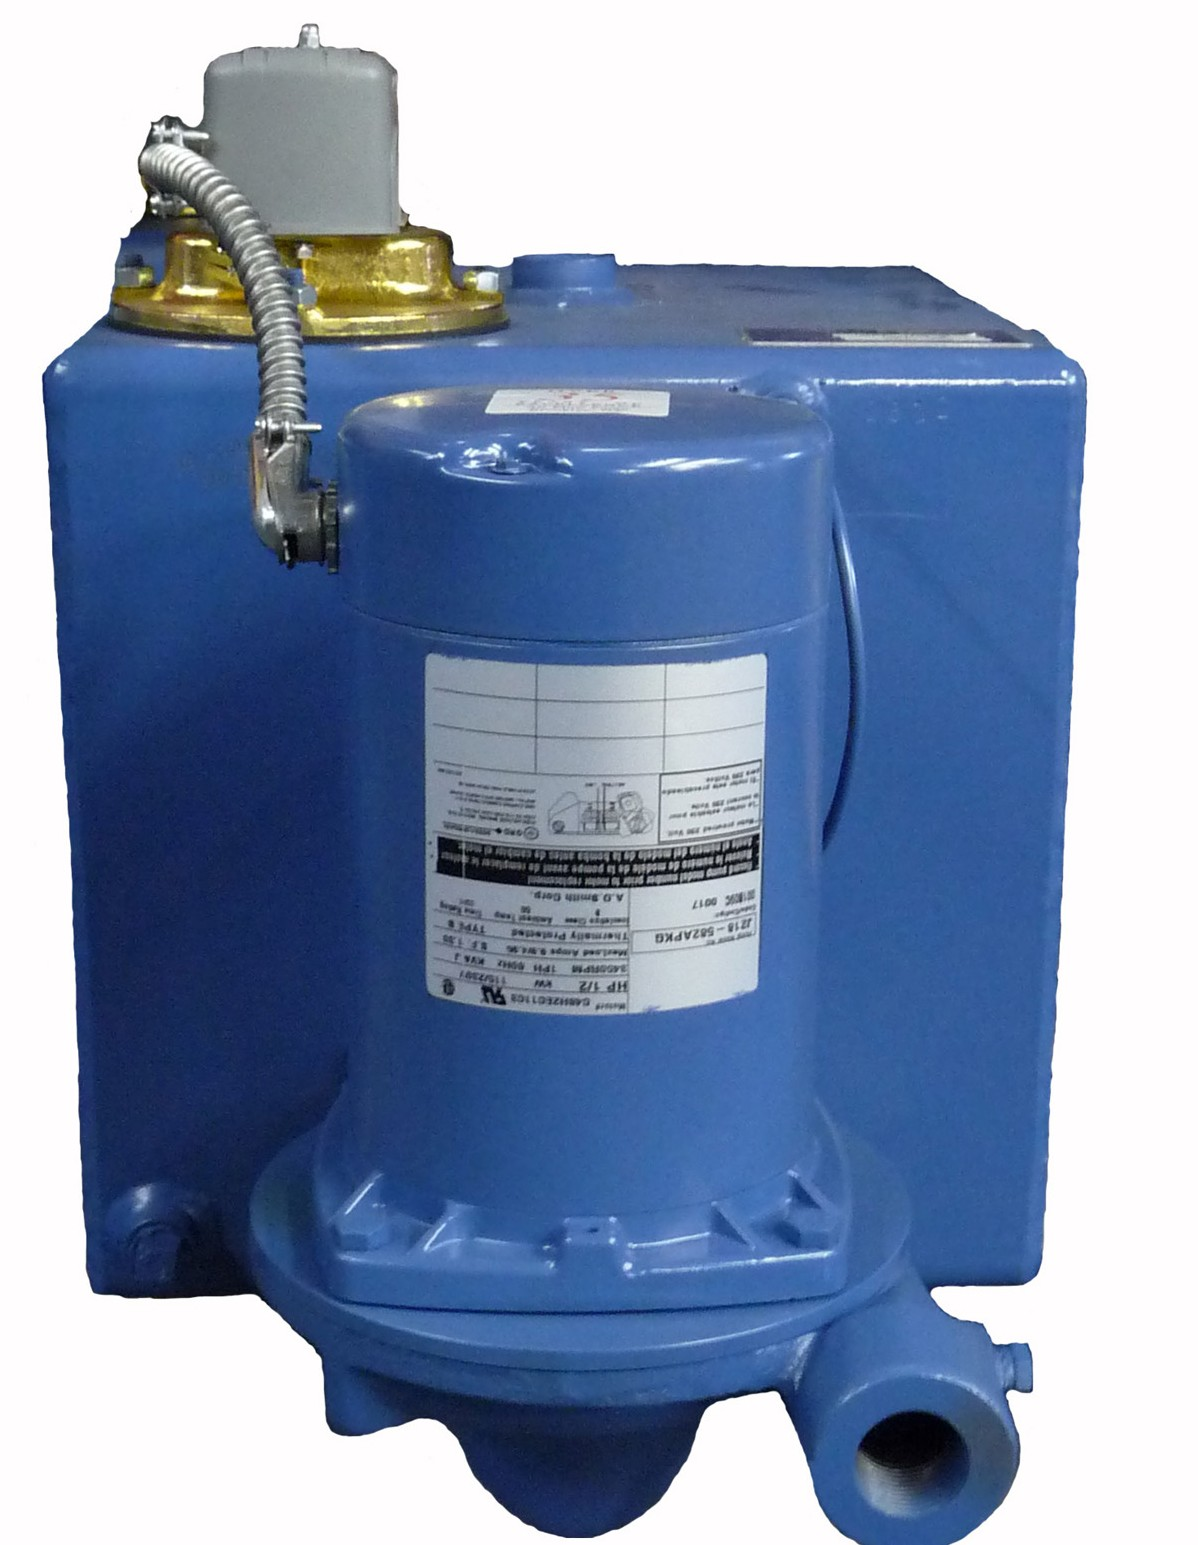 Airflow Pump 10 Gallon Condensate Units